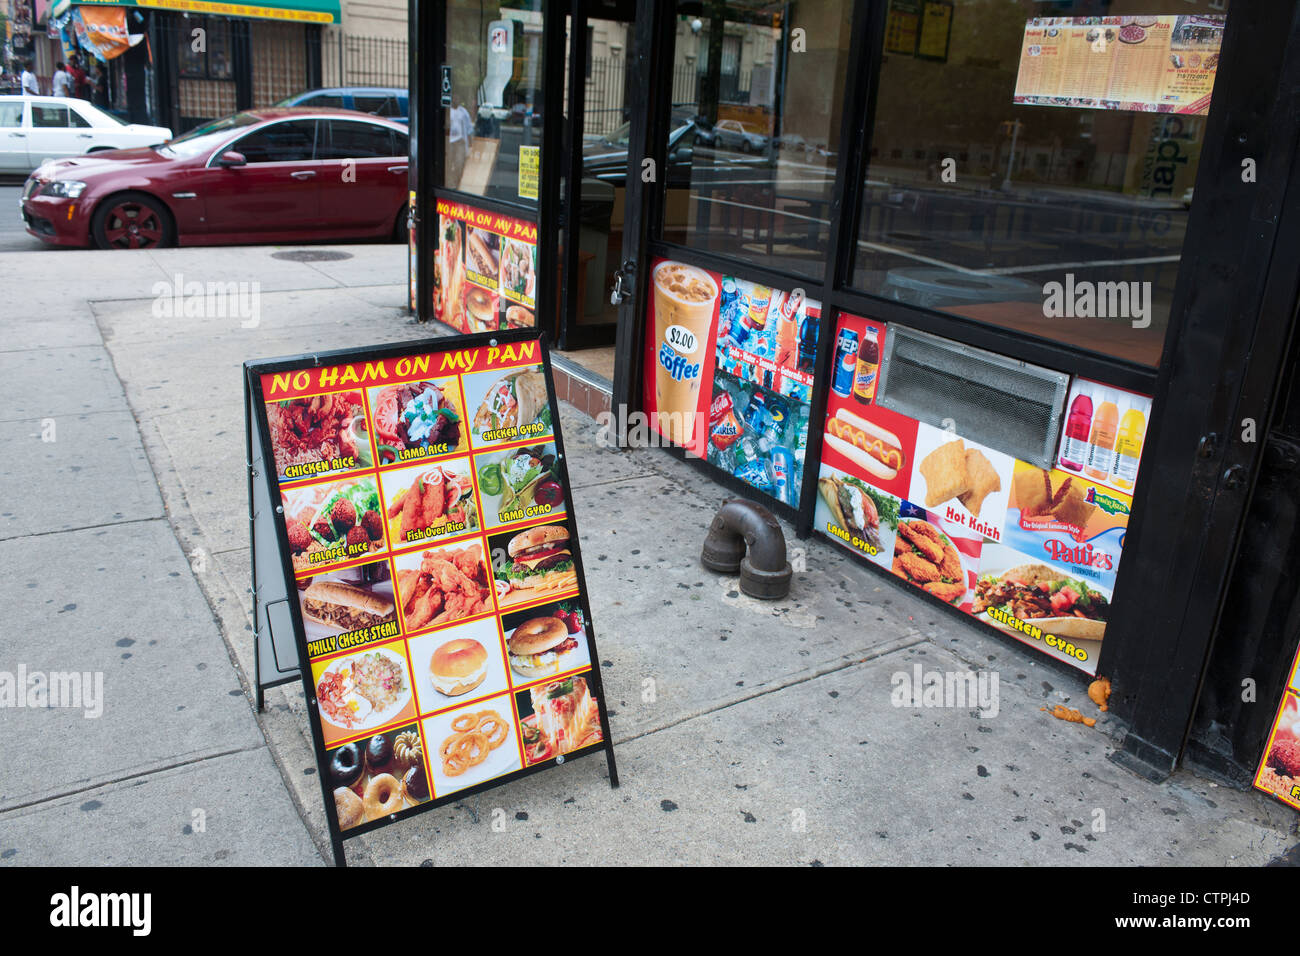 Makkah Pizza in Harlem in New York proudly proclaims 'No Ham On My Pan' on its advertising - Stock Image